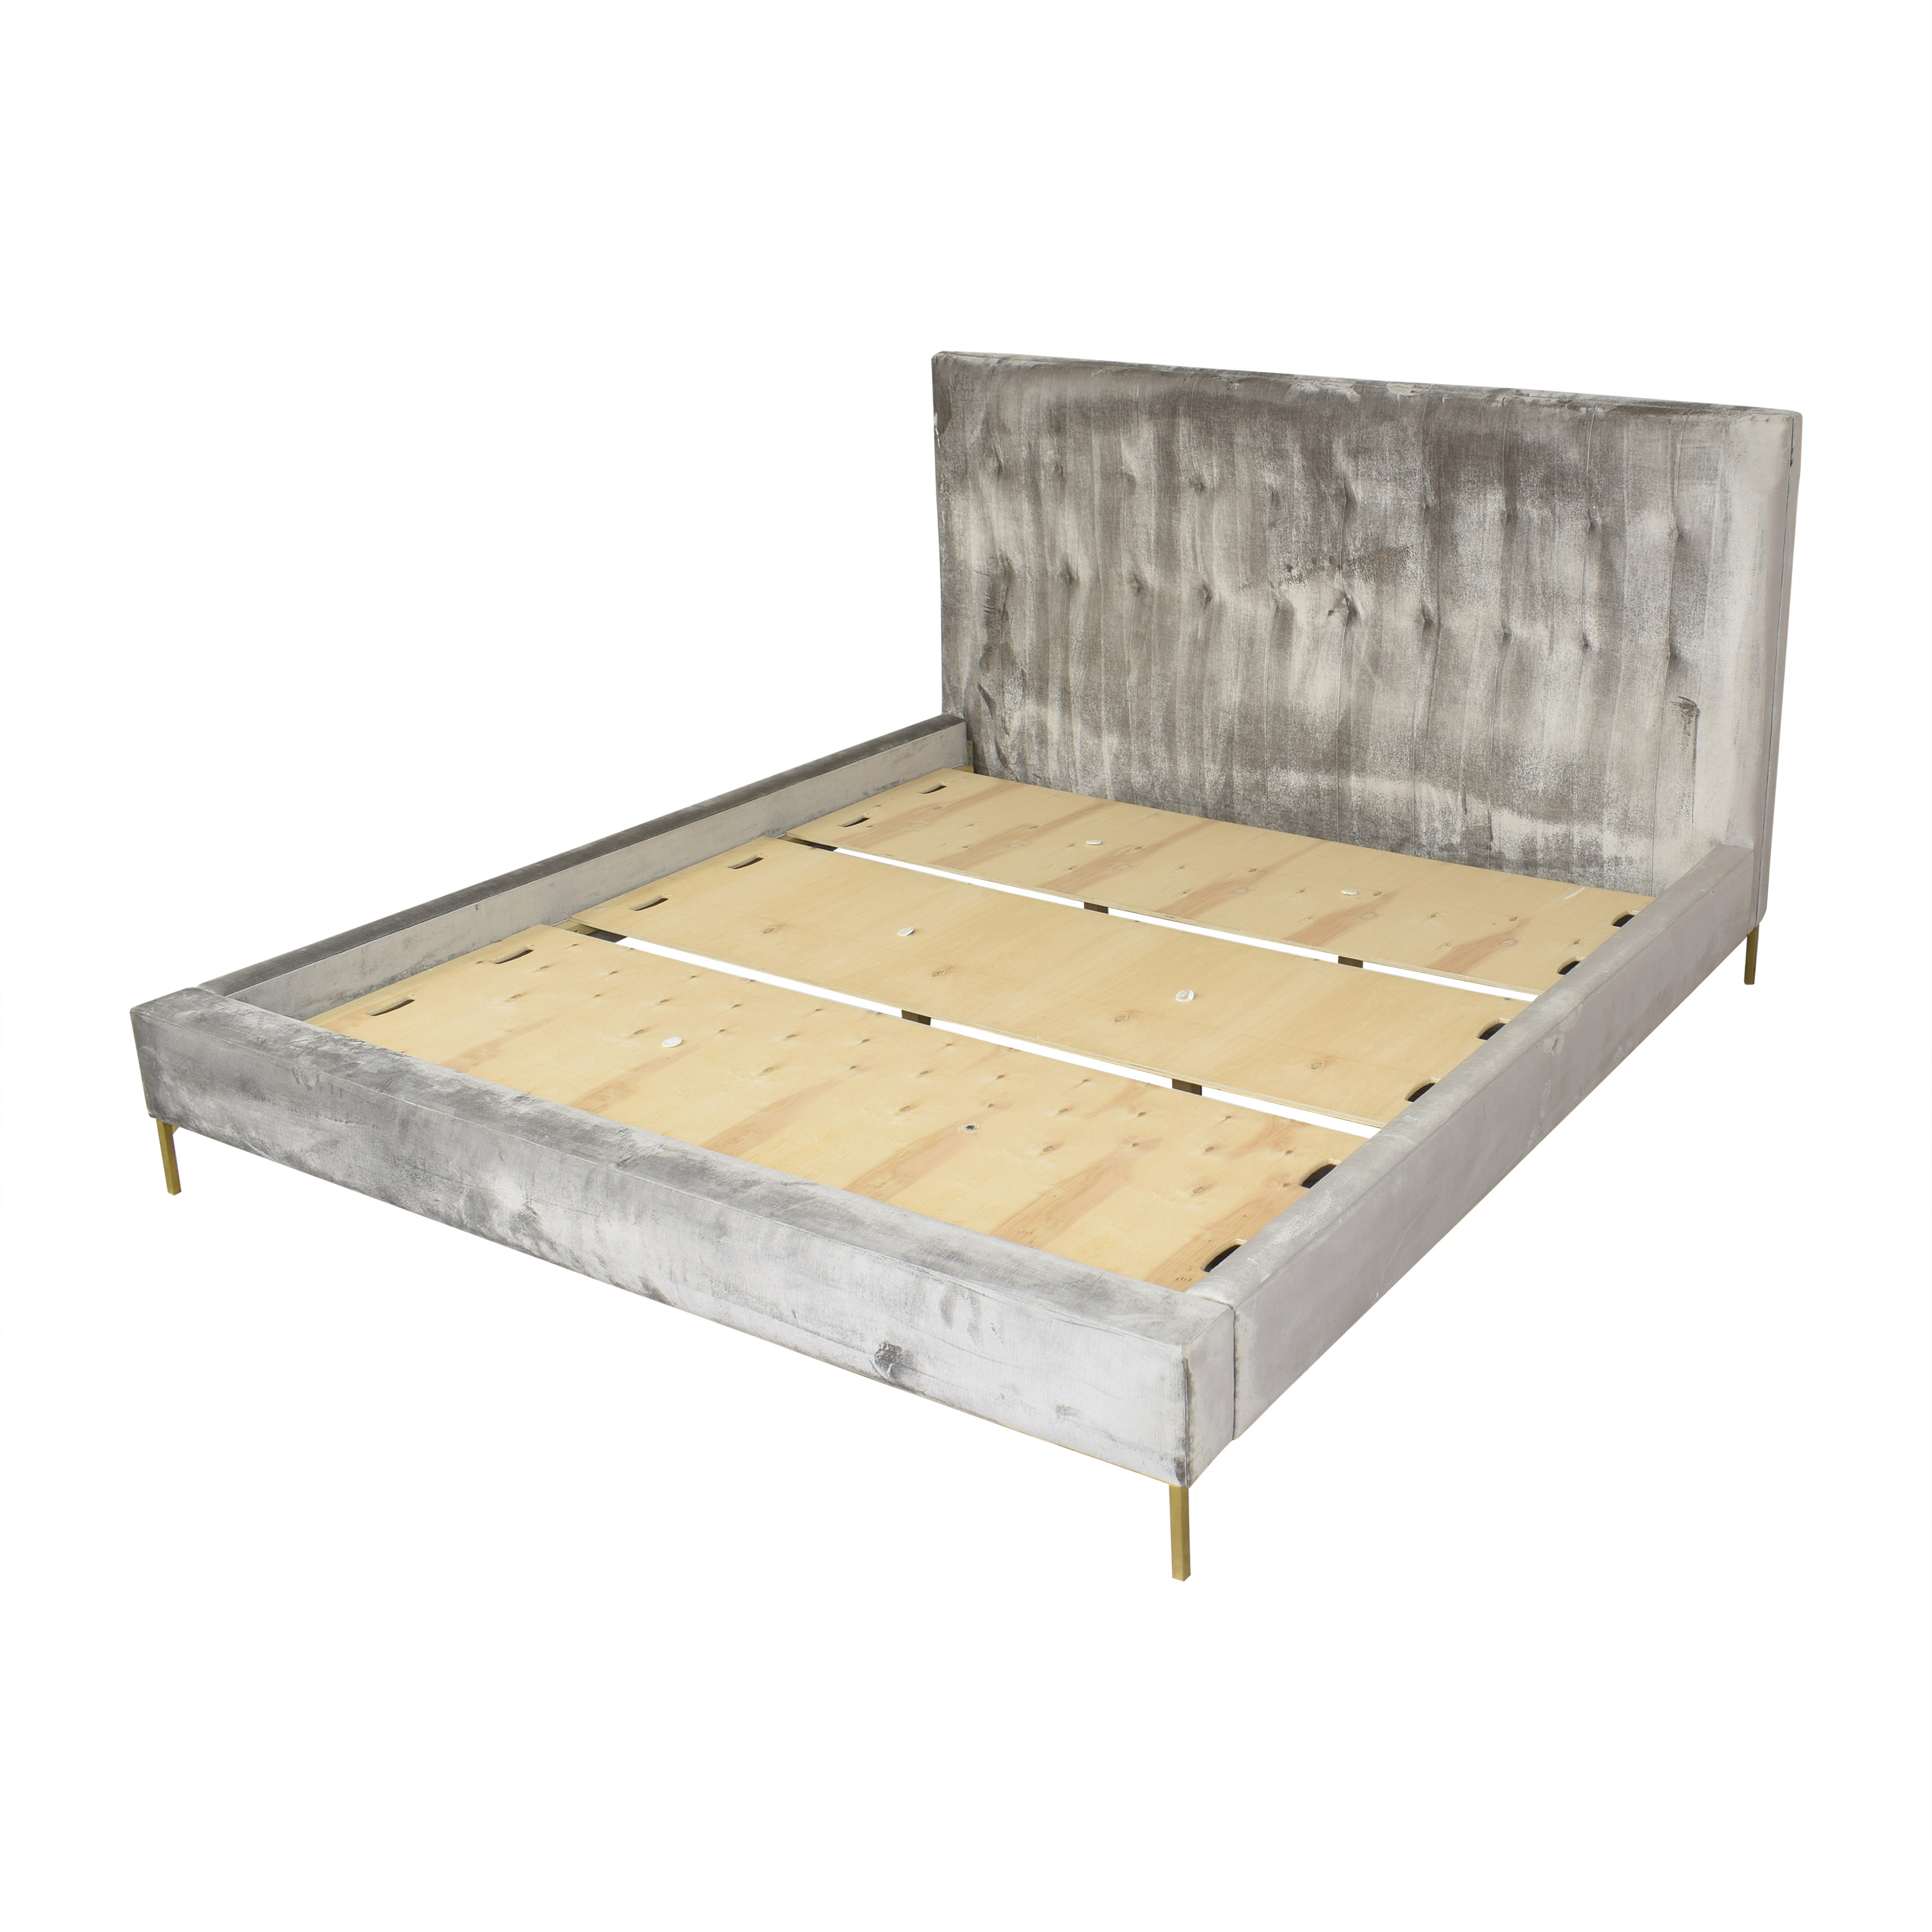 ABC Carpet & Home ABC Carpet & Home Tufted King Bed coupon